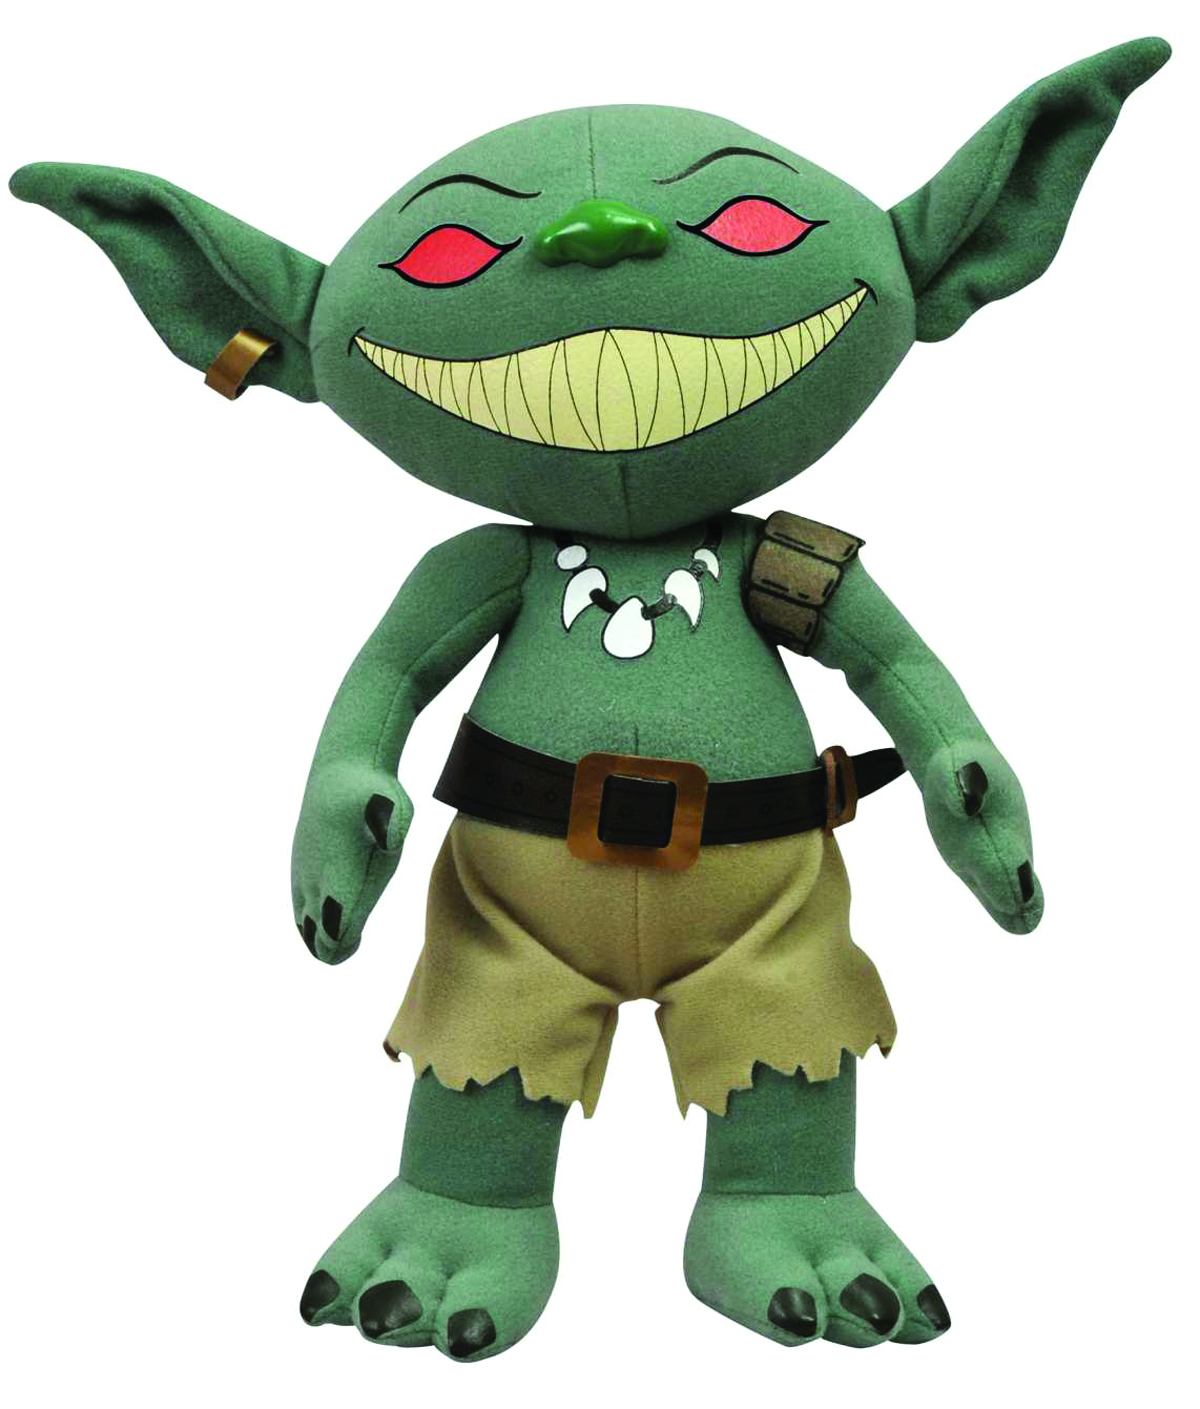 PATHFINDER LICKTOAD GOBLIN 10-IN PLUSH FIGURE